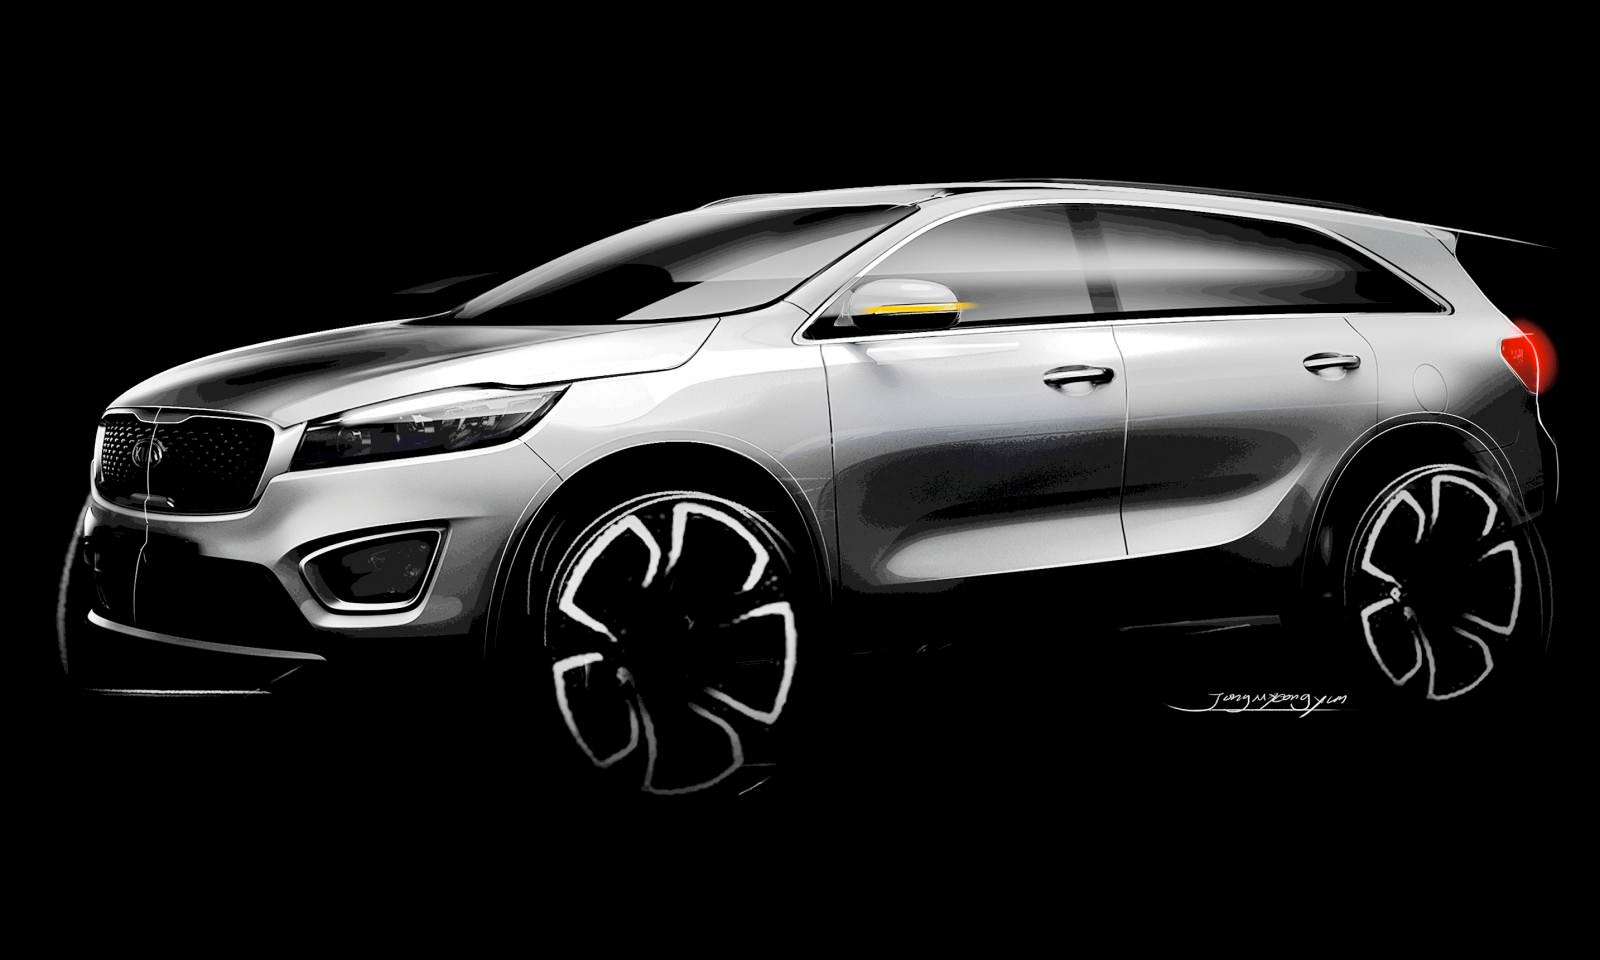 Kia-to-unveil-all-new-Sorento-at-the-2014-Paris-Motor-Show-572271